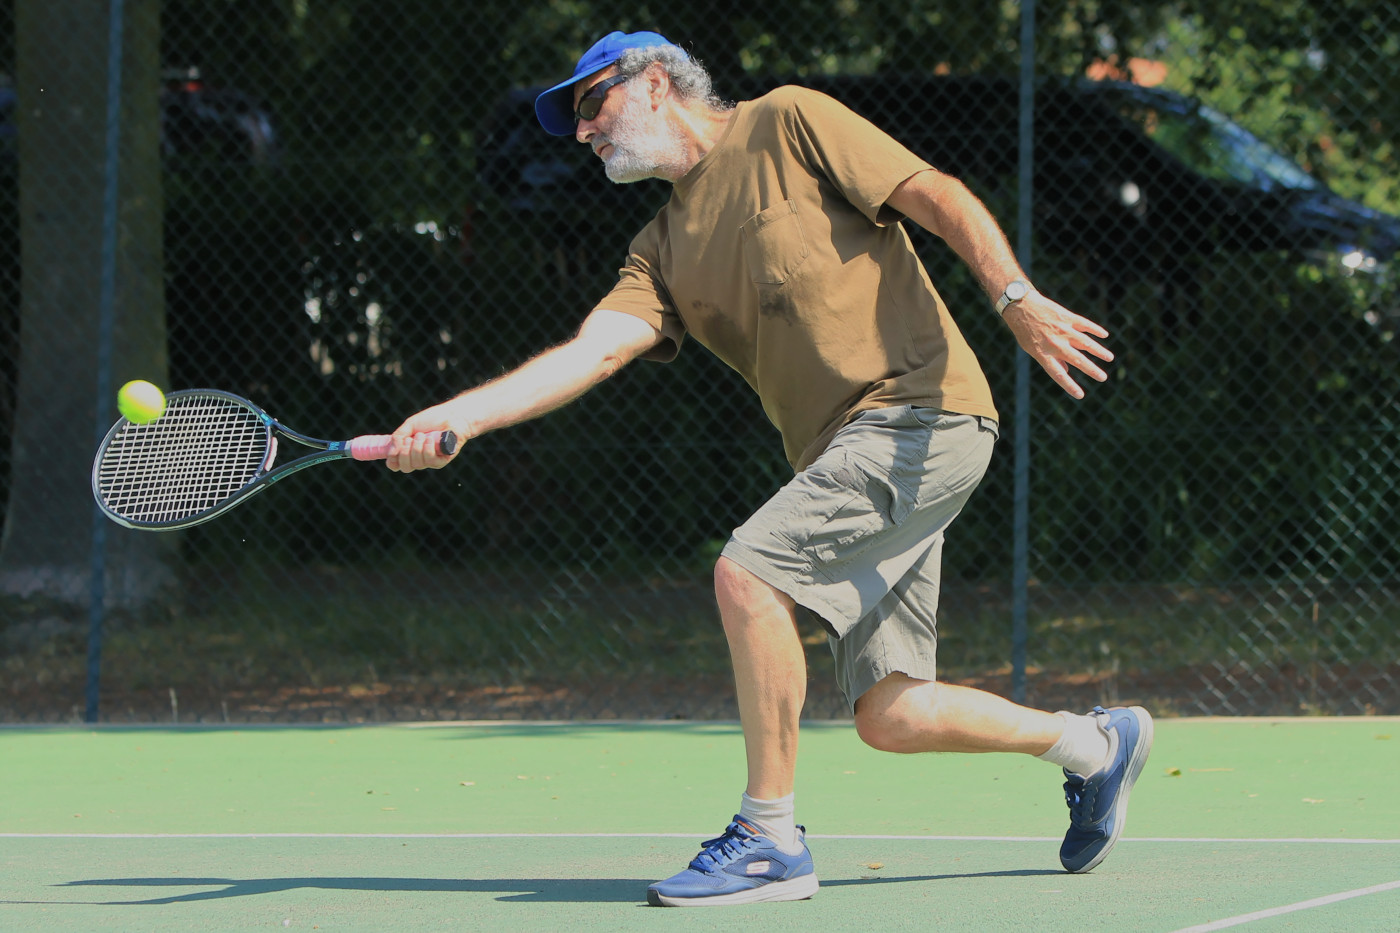 A member of Woodbridge Tennis club on court